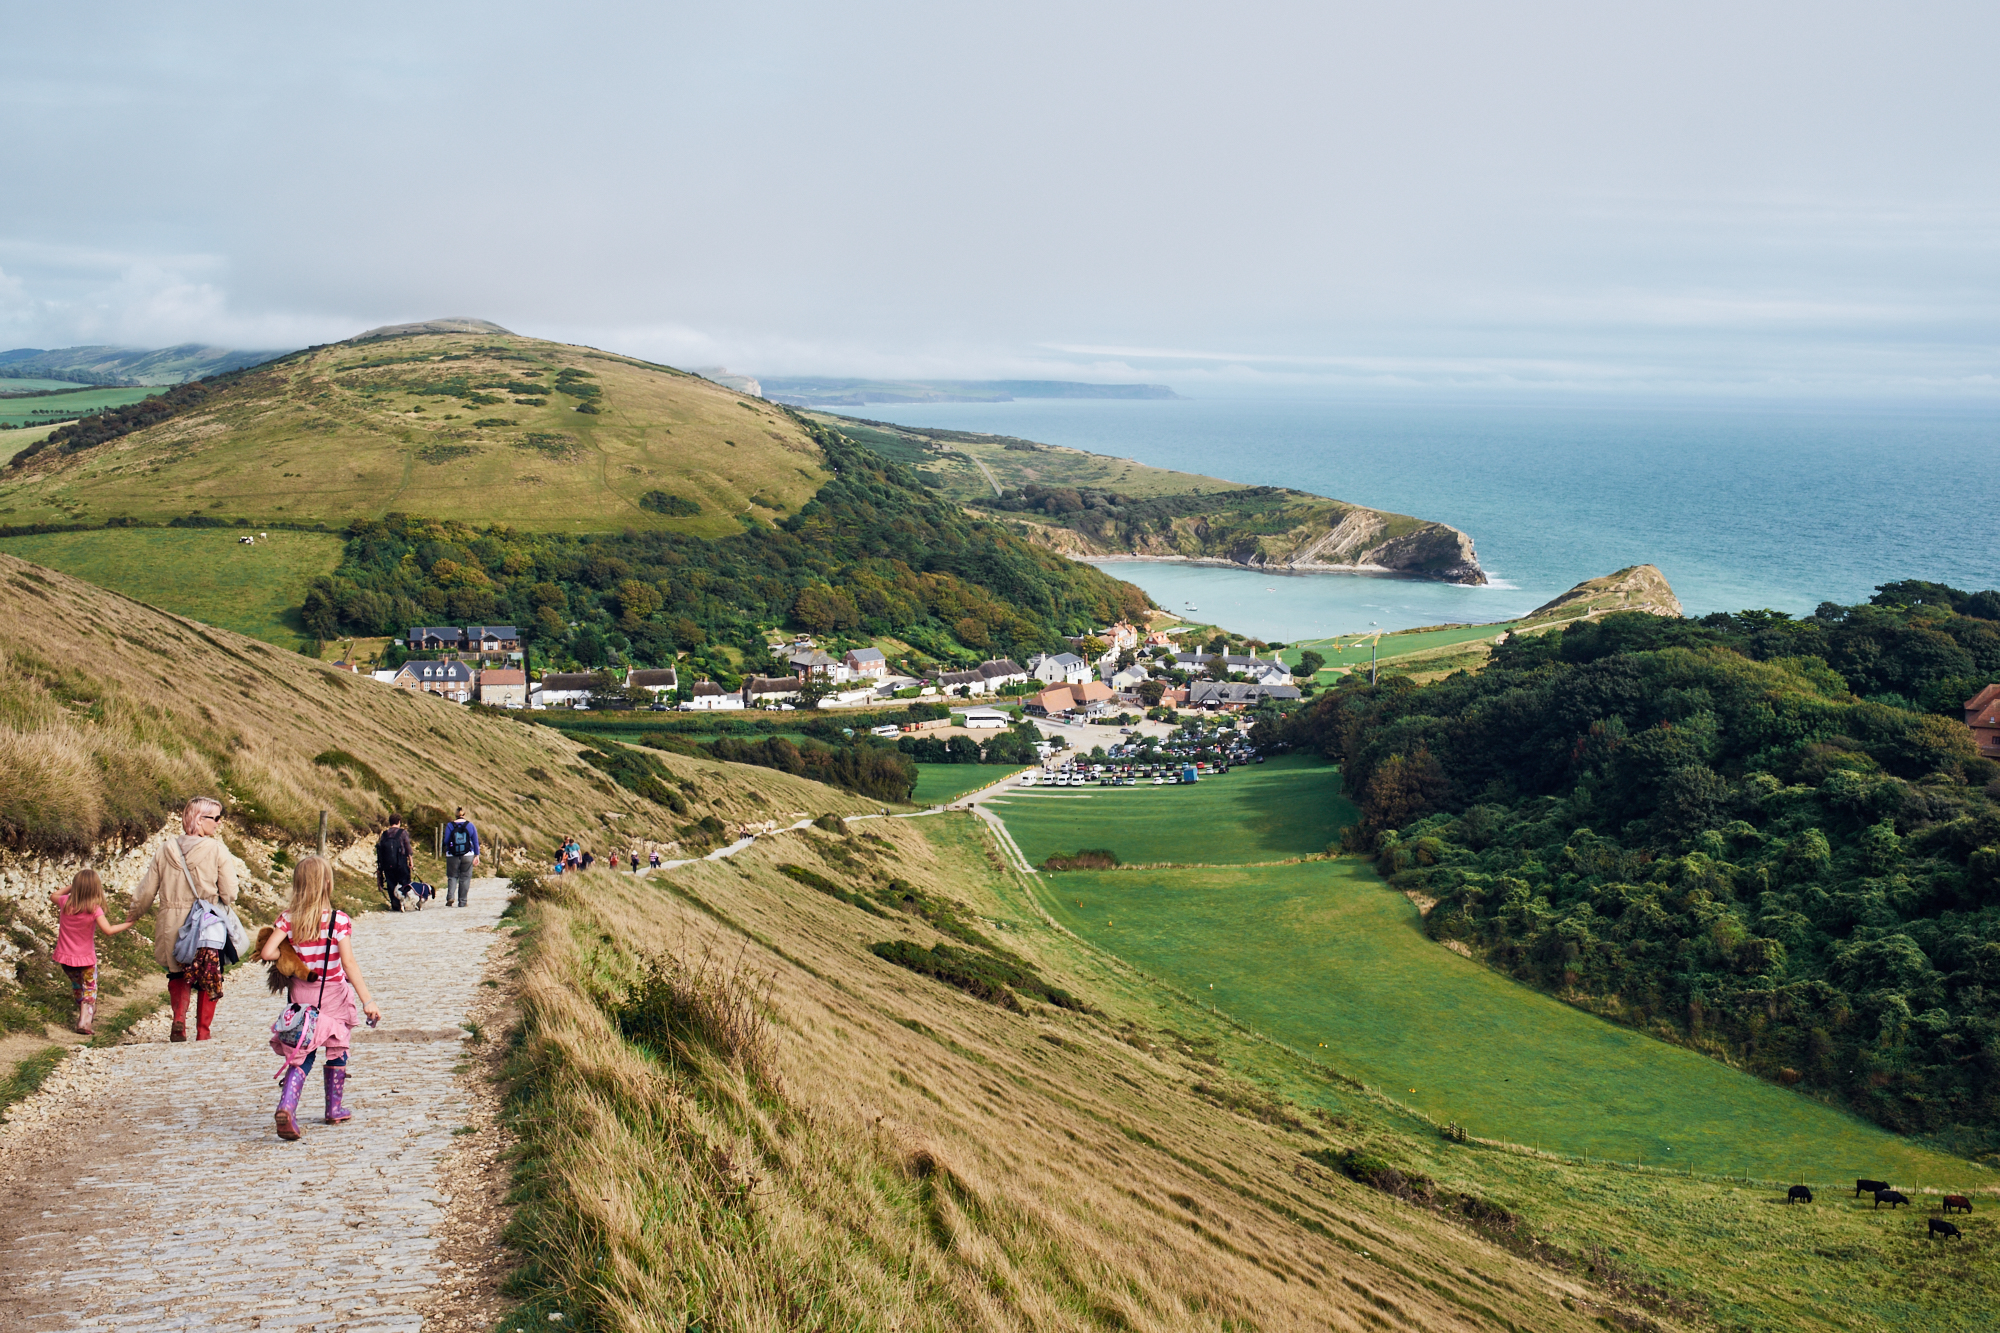 Lulworth Cove in distance © Andrew Newson